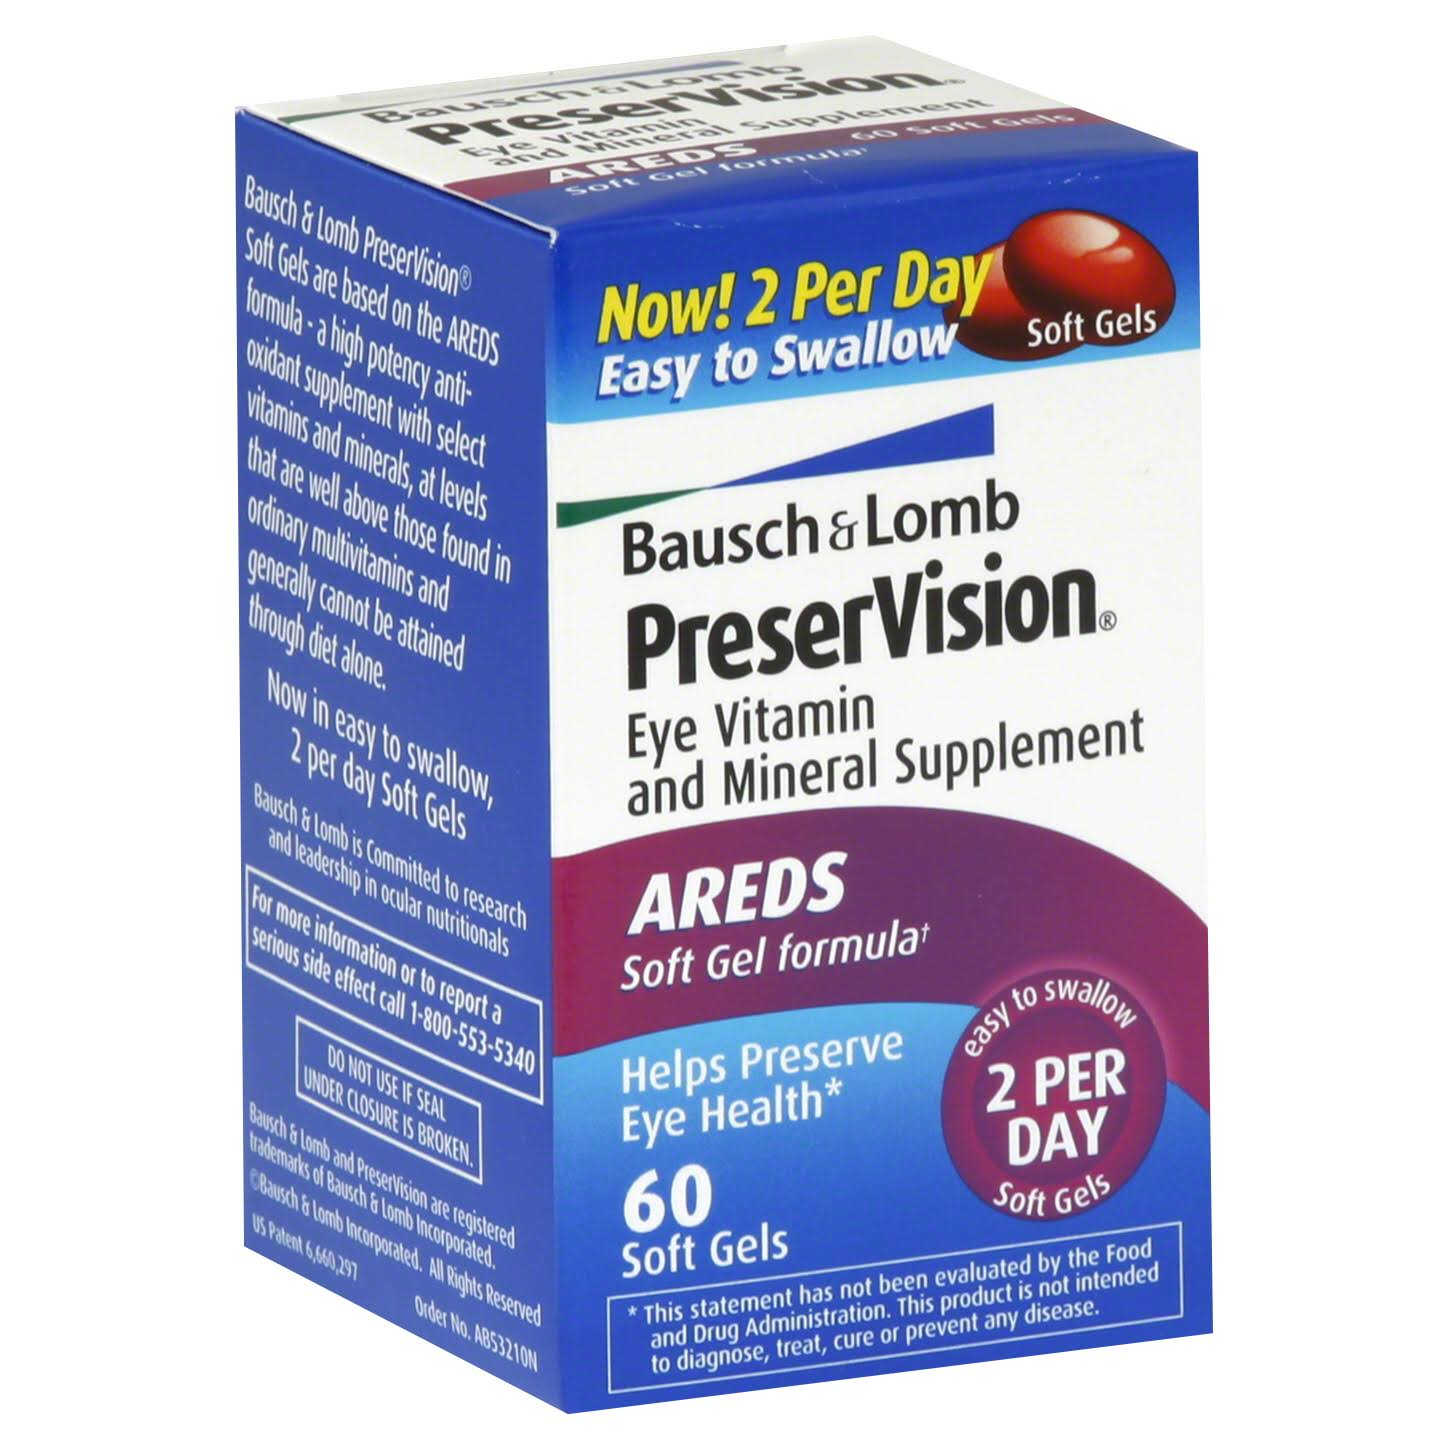 Bausch + Lomb PreserVision Eye Vitamin & Mineral Supplement - x60